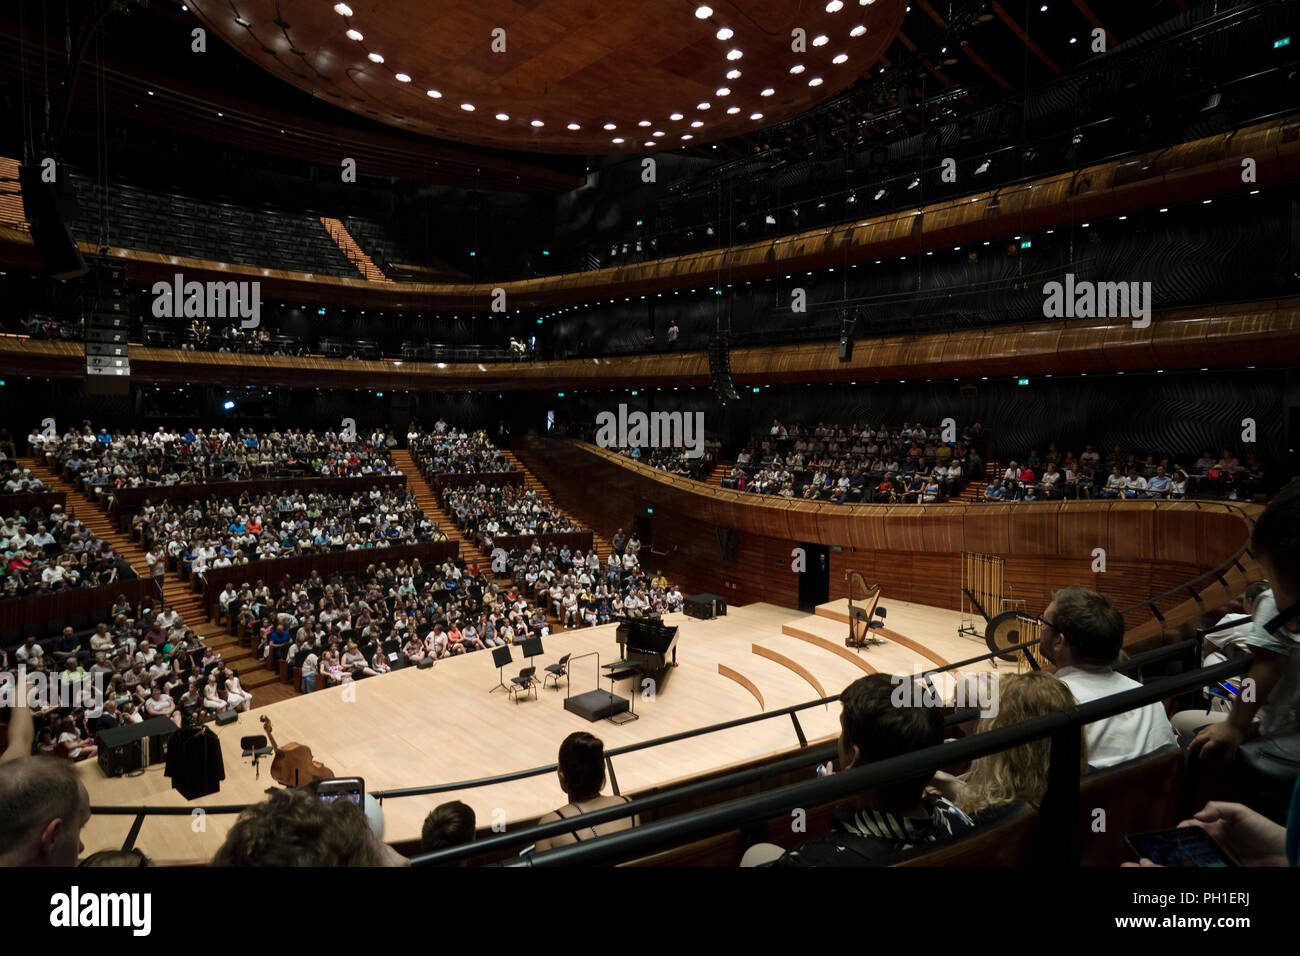 Main concert hall in site of the Polish National Radio Symphony Orchestra in Katowice. Stock Photo